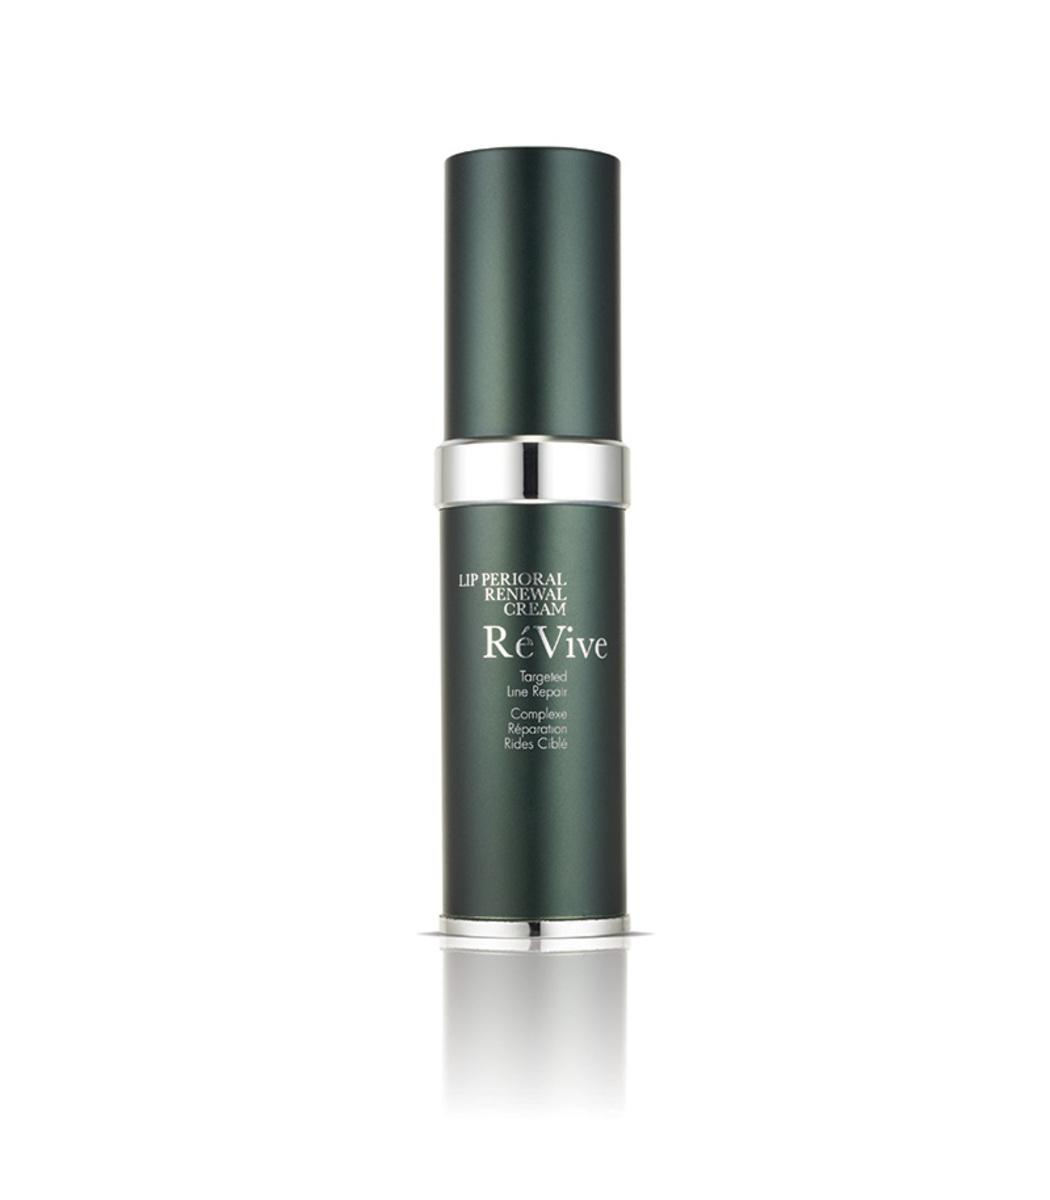 Revive Lip And Perioral Renewal Cream In N/A